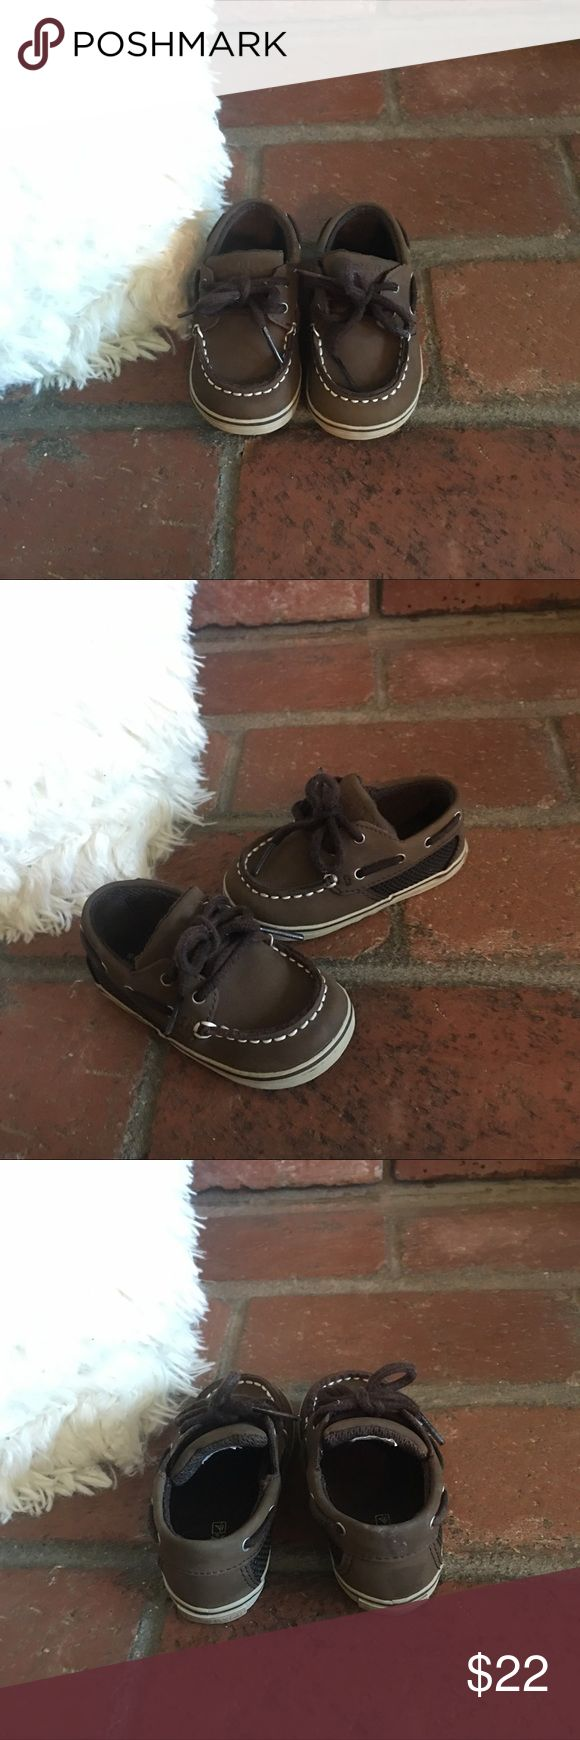 Baby Sperry Top Sider Dark brown baby top siders boat shoes. Worn once for a wedding Sperry Top-Sider Shoes Baby & Walker